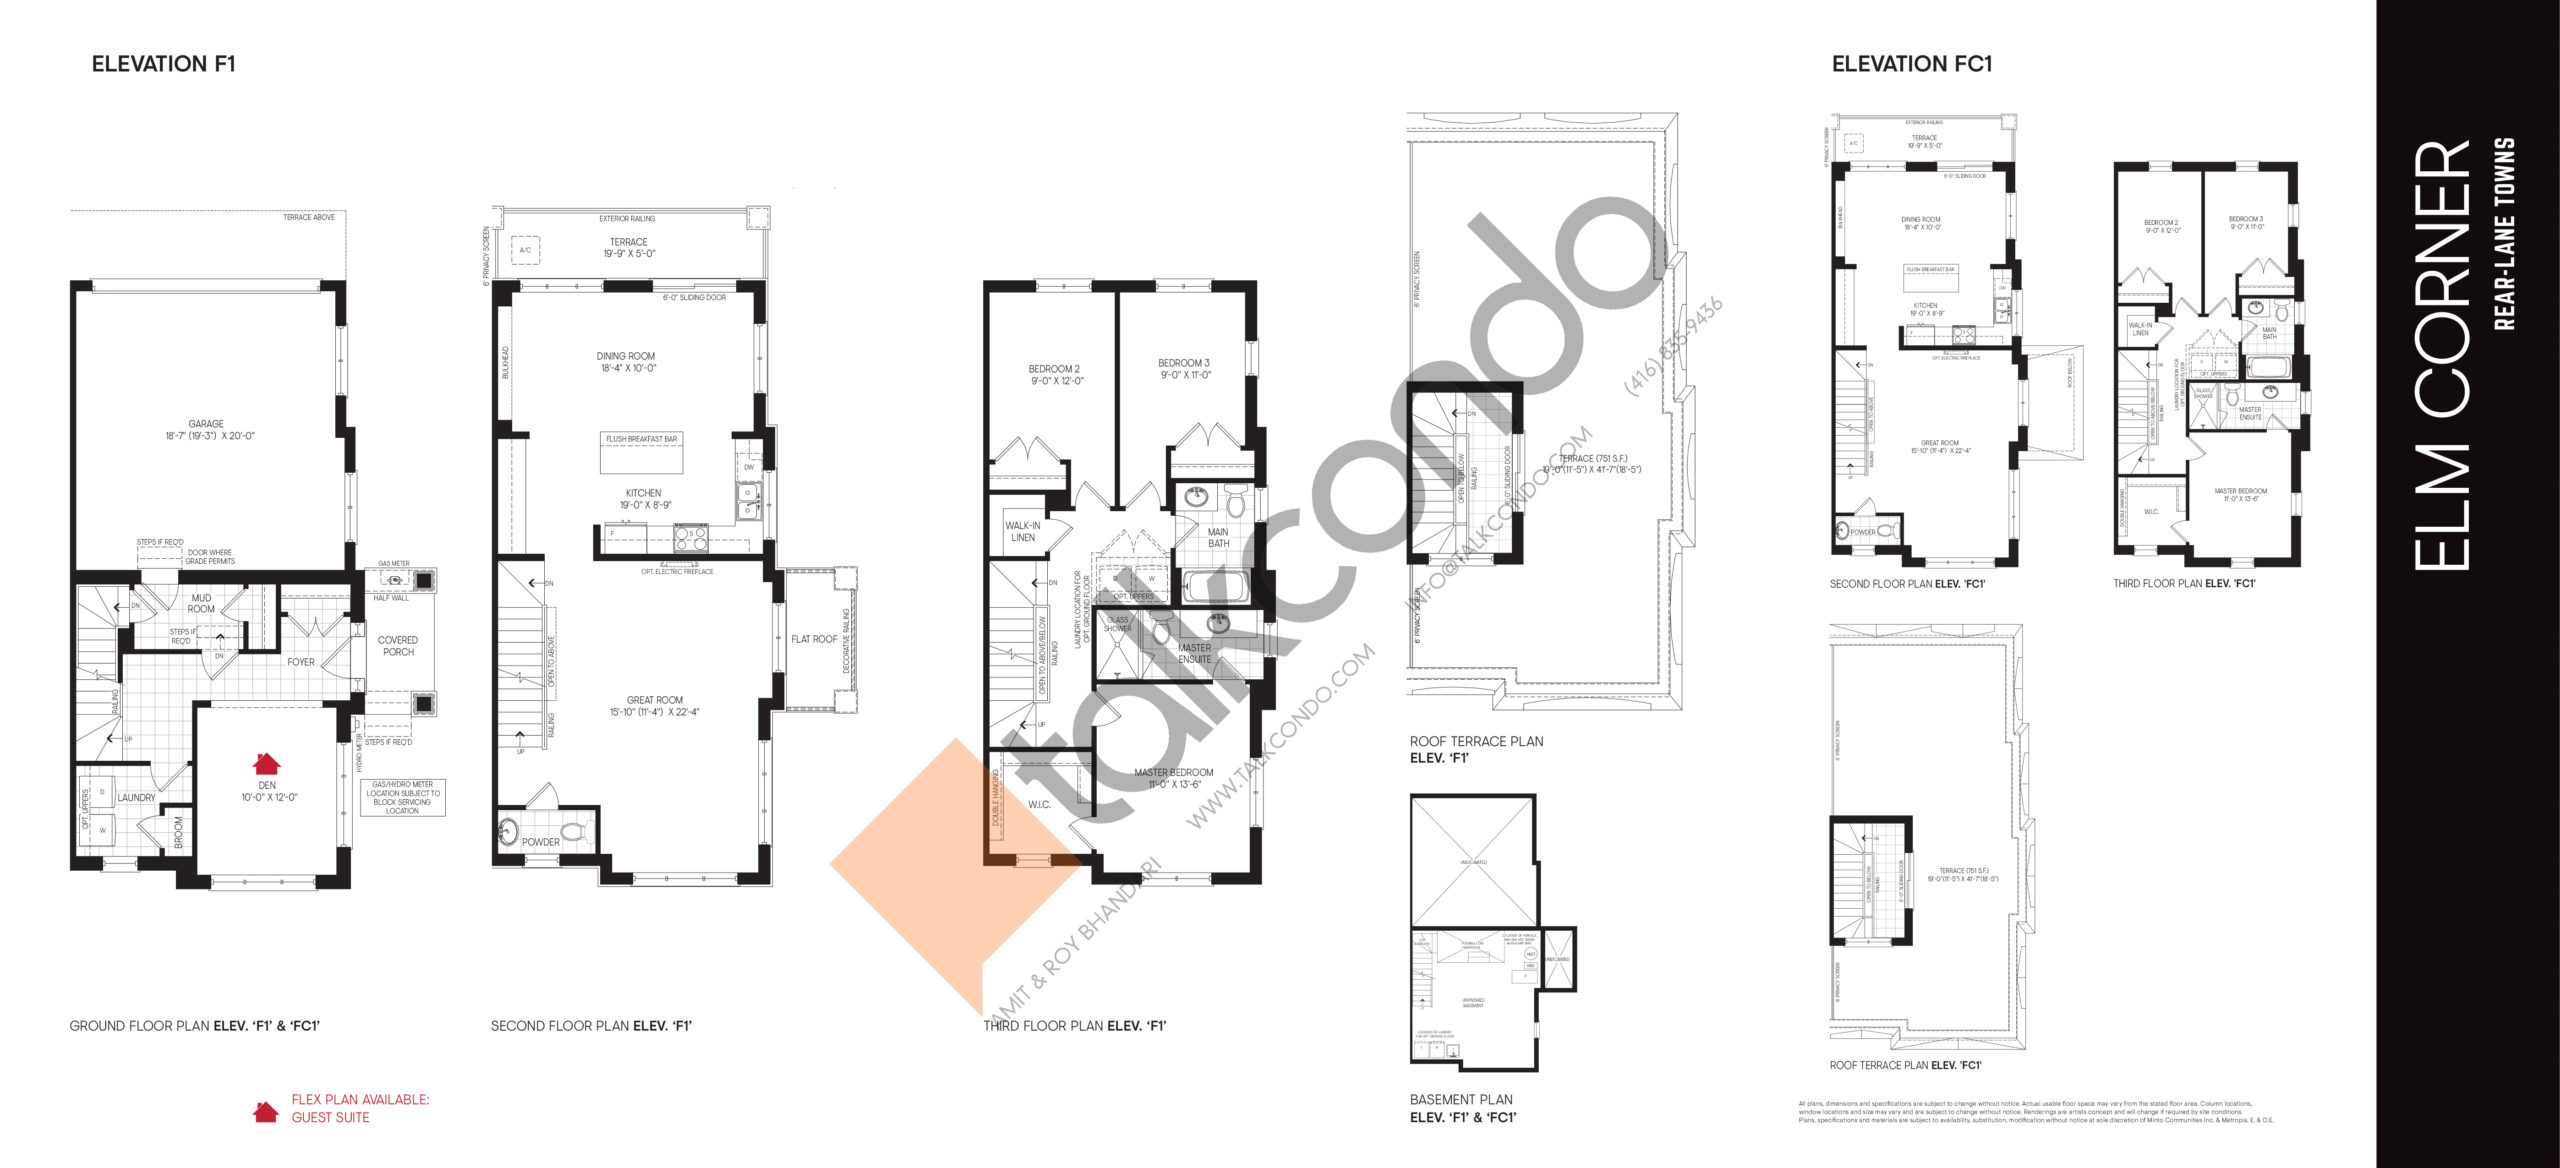 Elm Corner F1 | FC1- Rear-Lane Towns Floor Plan at Union Village - 2334 sq.ft